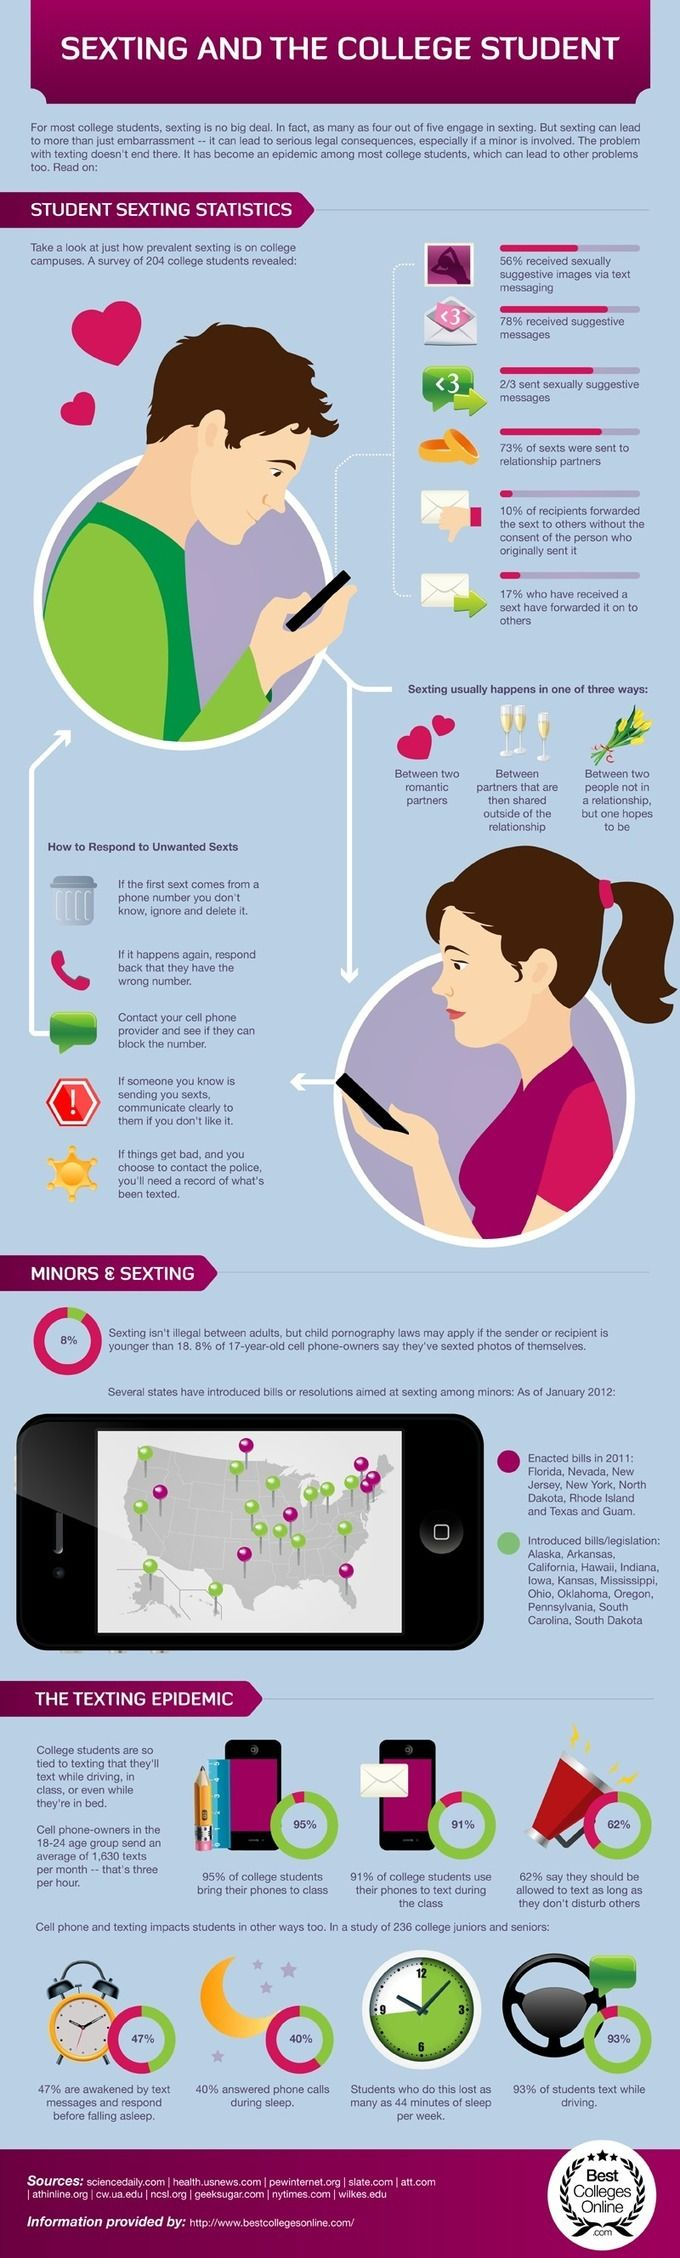 Sexting-And-The-College-StudentInteresting Things, Technology Infographic, Student Infographic, Colleges Sexting, Sexting Infografía, Dirty Texts, Sexting Infographic, Colleges Stuff, Colleges Student